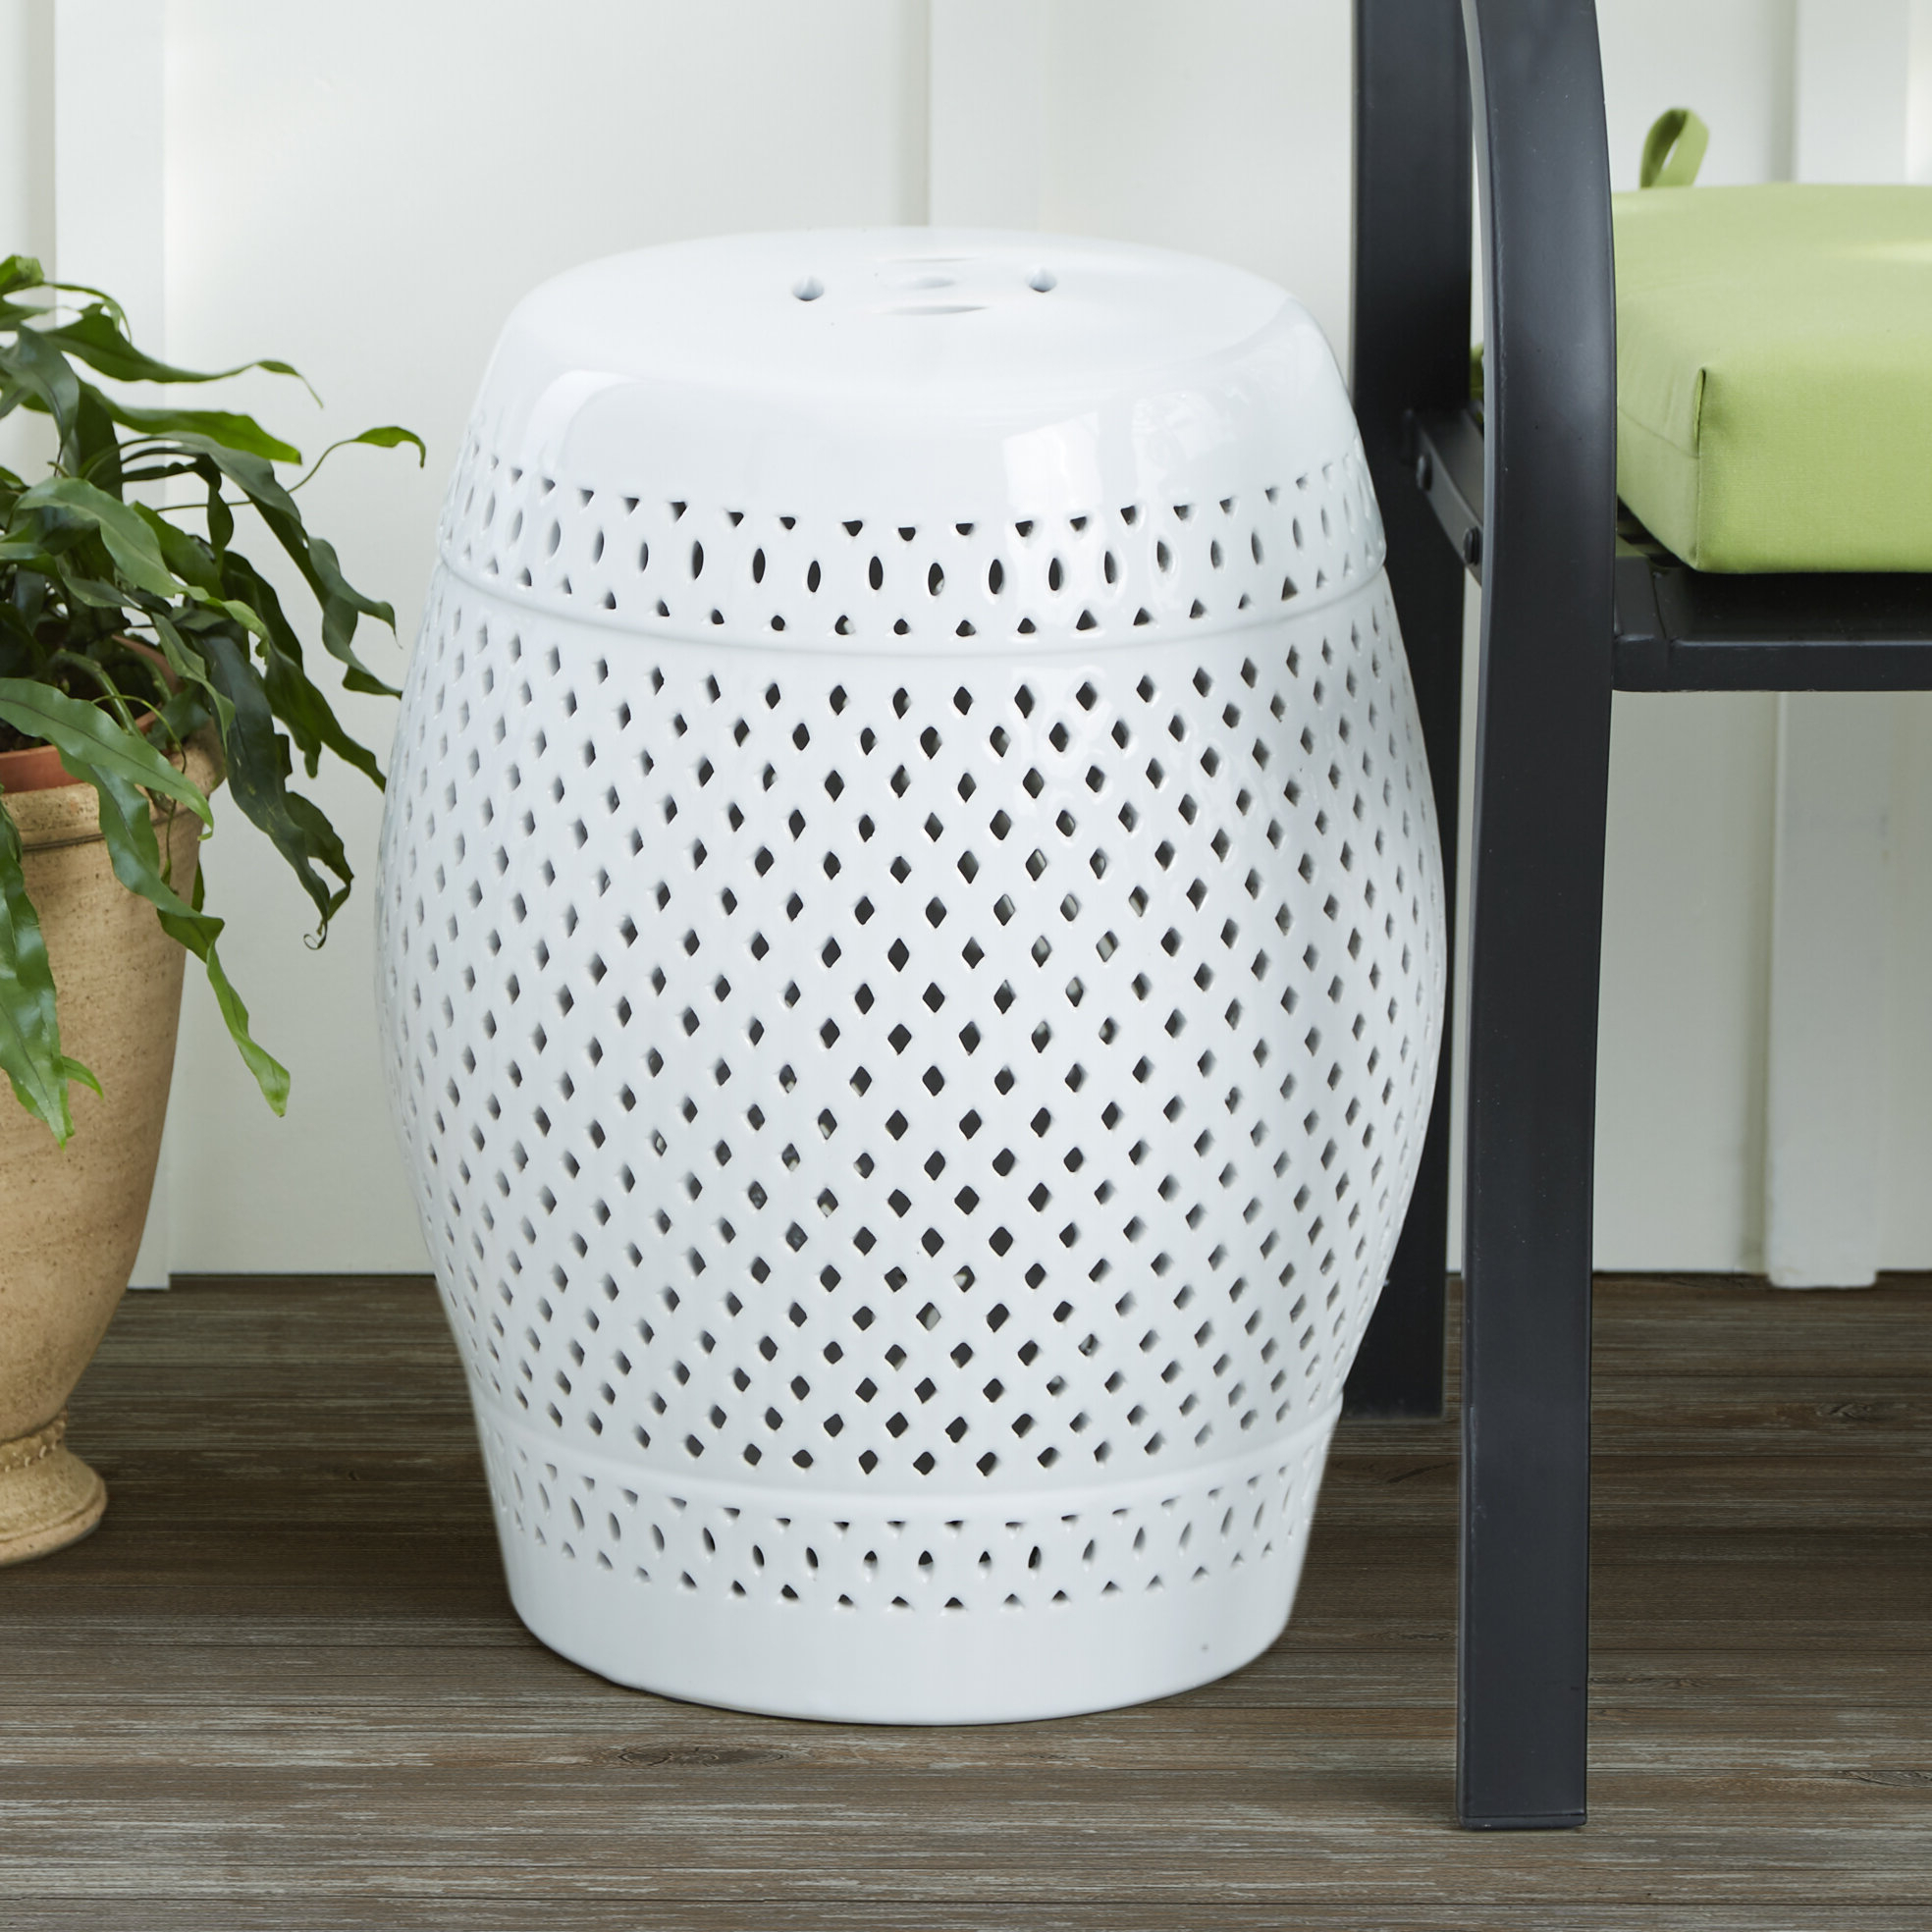 Feliciana Ceramic Garden Stools Intended For Widely Used Rivera Ceramic Garden Stool (View 7 of 30)